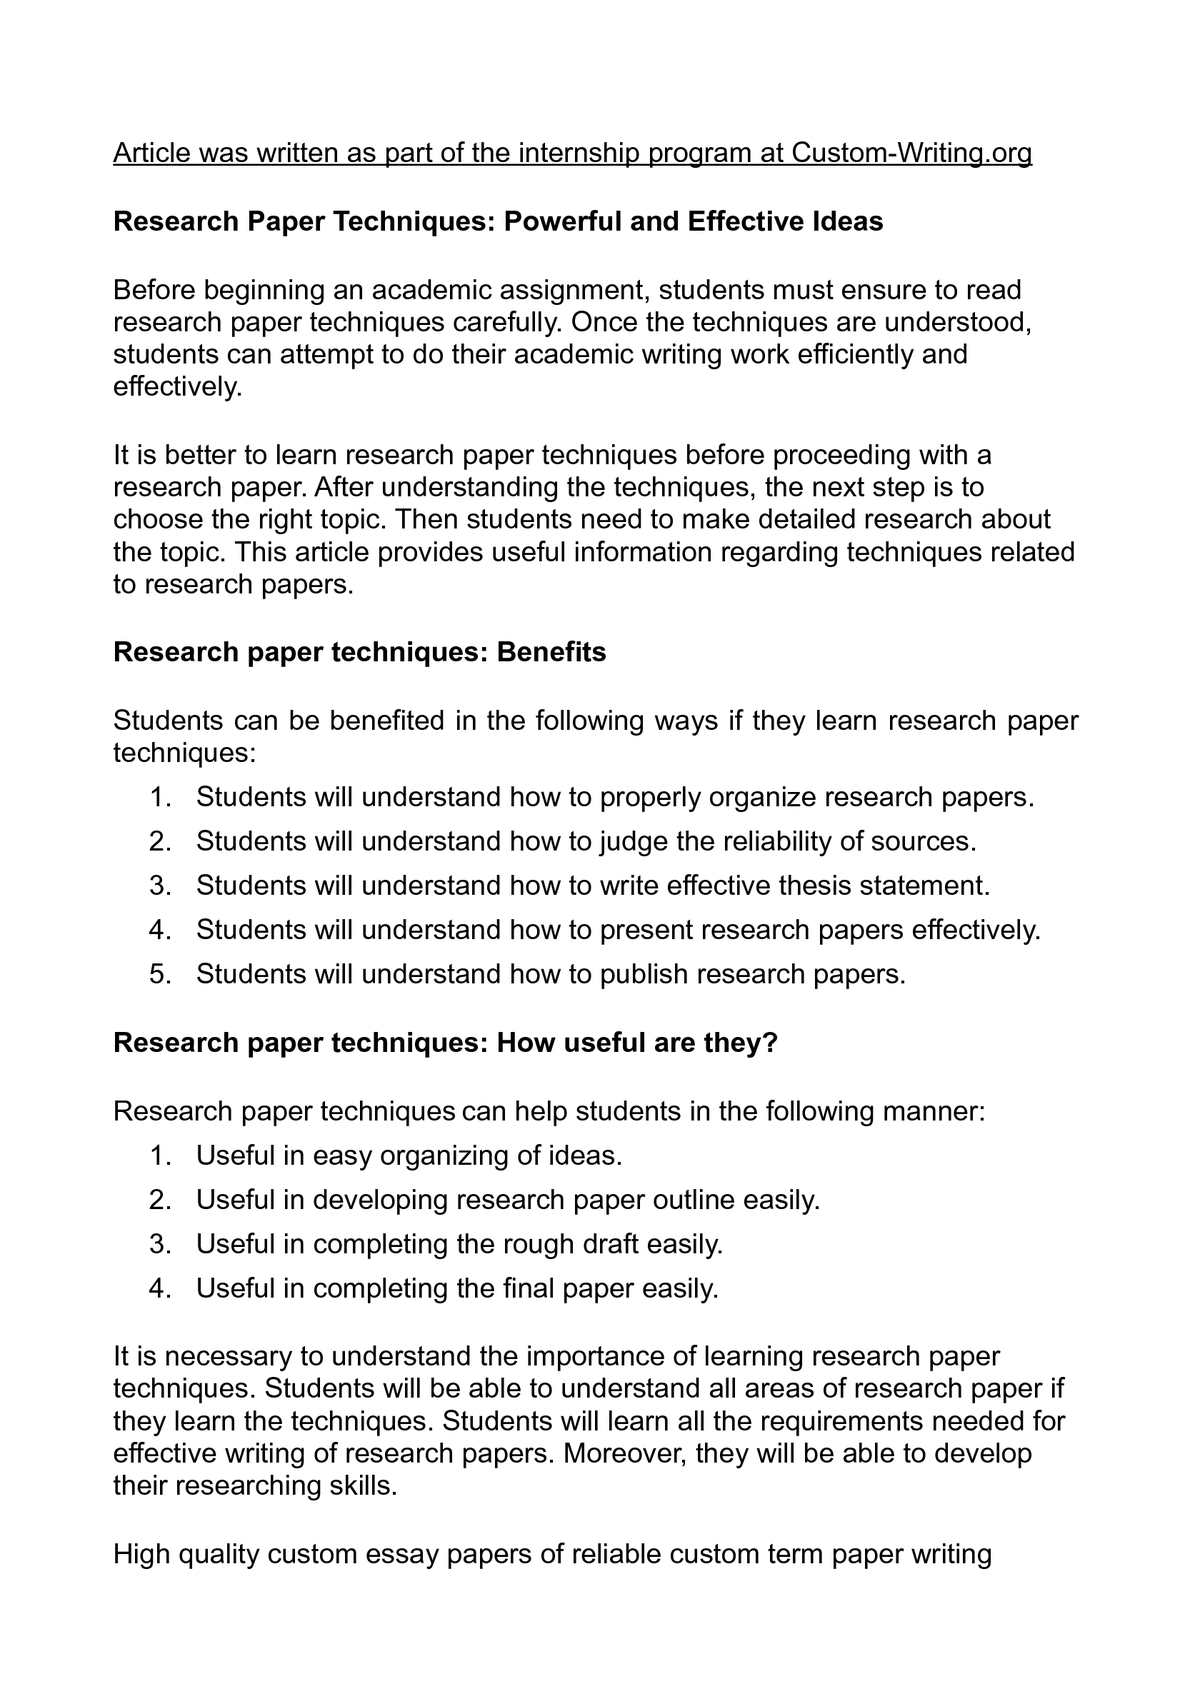 003 Ideas For Research Paper Fascinating Papers In Computer Science Middle School Topic High Full